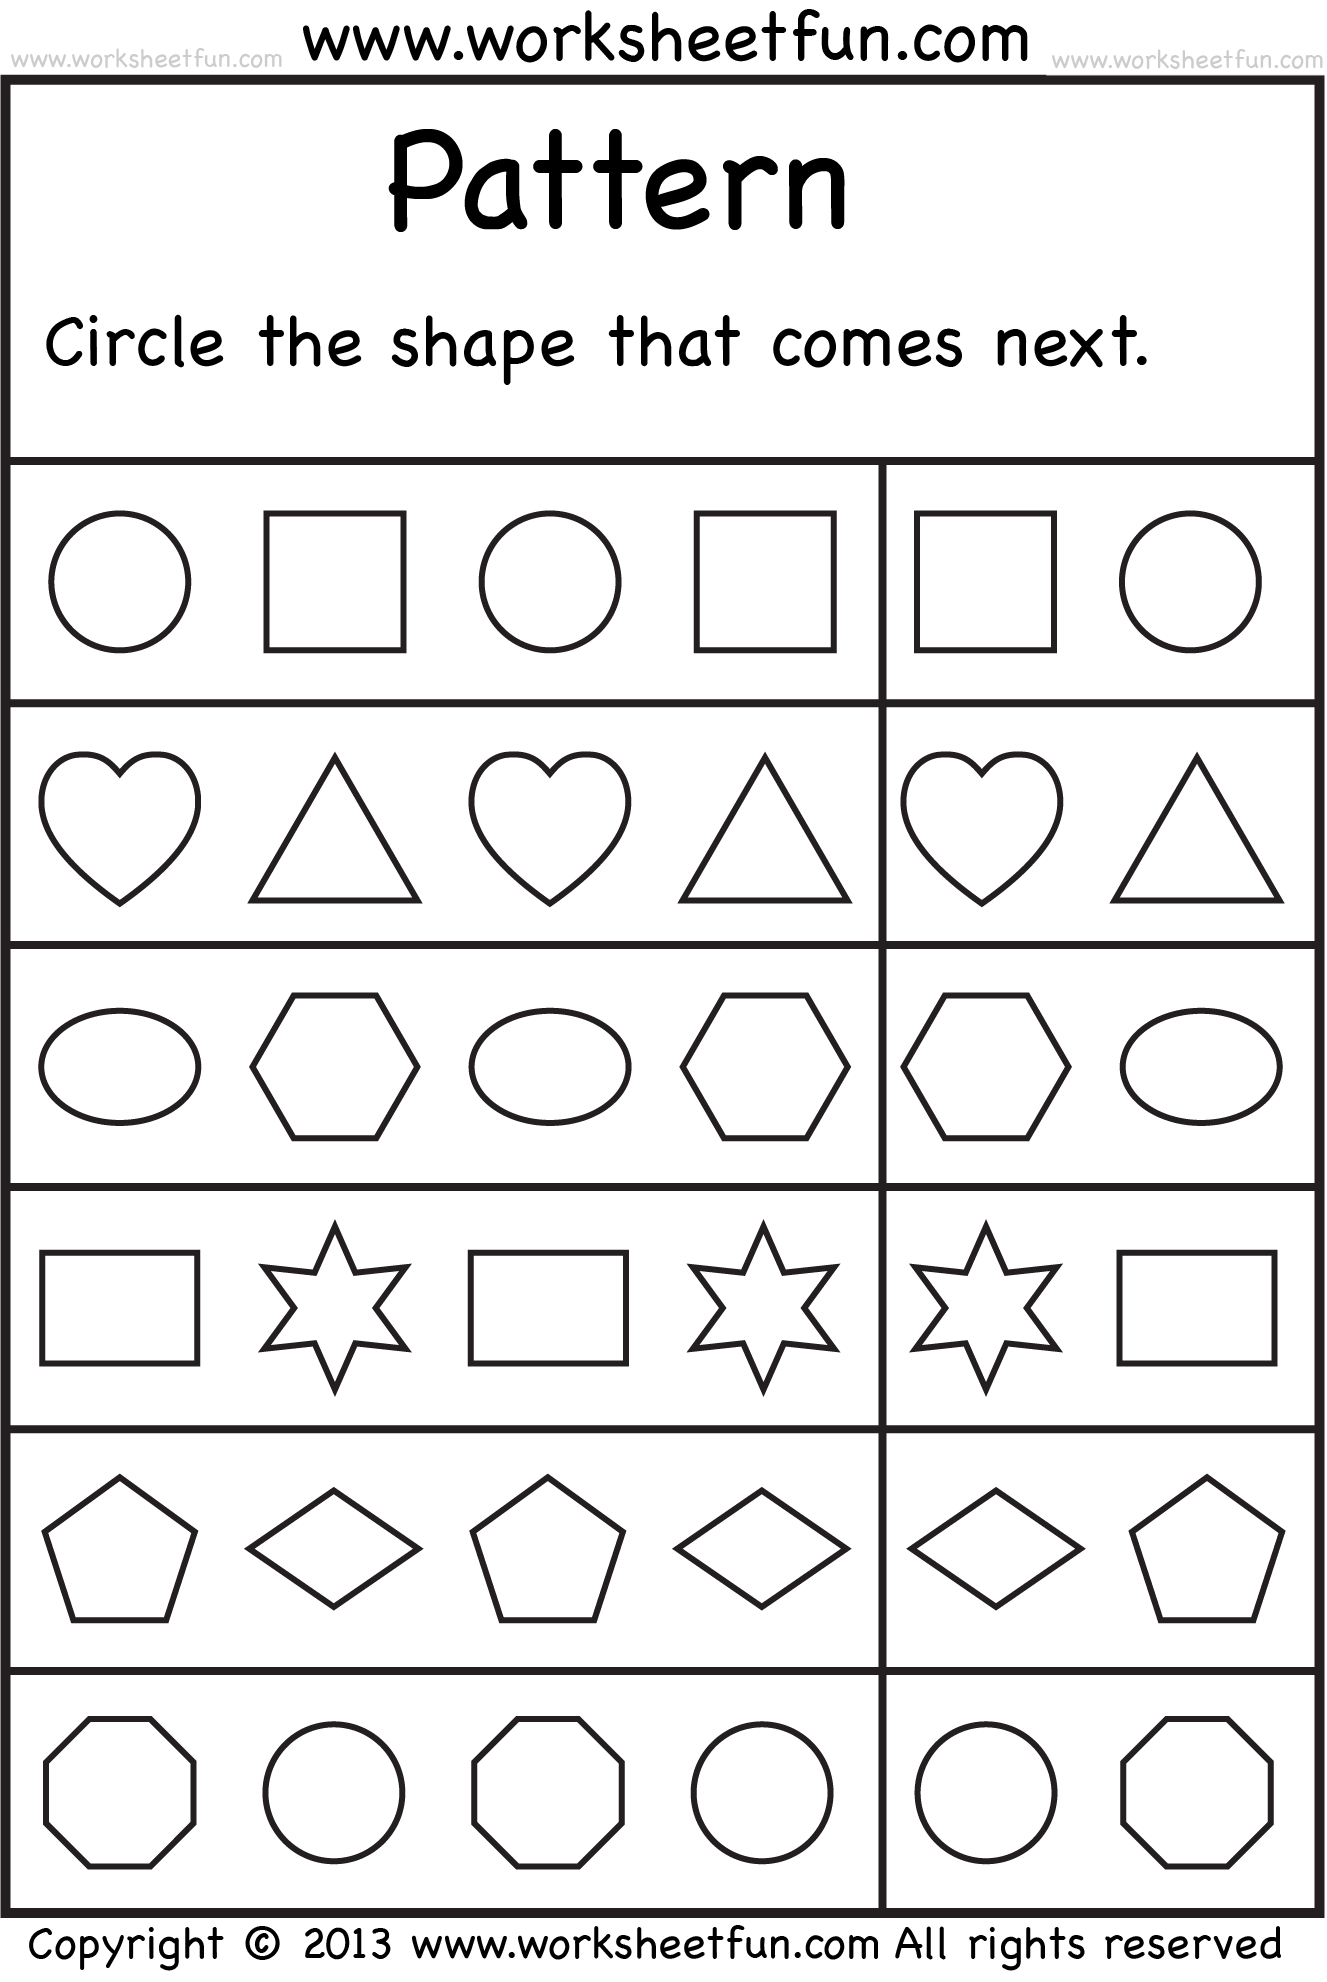 Weirdmailus  Pleasant  Images About School Worksheets On Pinterest  Number Words  With Exciting  Images About School Worksheets On Pinterest  Number Words Alphabet Worksheets And Free Printable Kindergarten Worksheets With Awesome Probability Worksheets Th Grade Also Weathering Worksheets In Addition  Digit By  Digit Multiplication Worksheet And Compromise Of  Worksheet As Well As Simplify Fraction Worksheet Additionally Geometry Volume Worksheets From Pinterestcom With Weirdmailus  Exciting  Images About School Worksheets On Pinterest  Number Words  With Awesome  Images About School Worksheets On Pinterest  Number Words Alphabet Worksheets And Free Printable Kindergarten Worksheets And Pleasant Probability Worksheets Th Grade Also Weathering Worksheets In Addition  Digit By  Digit Multiplication Worksheet From Pinterestcom